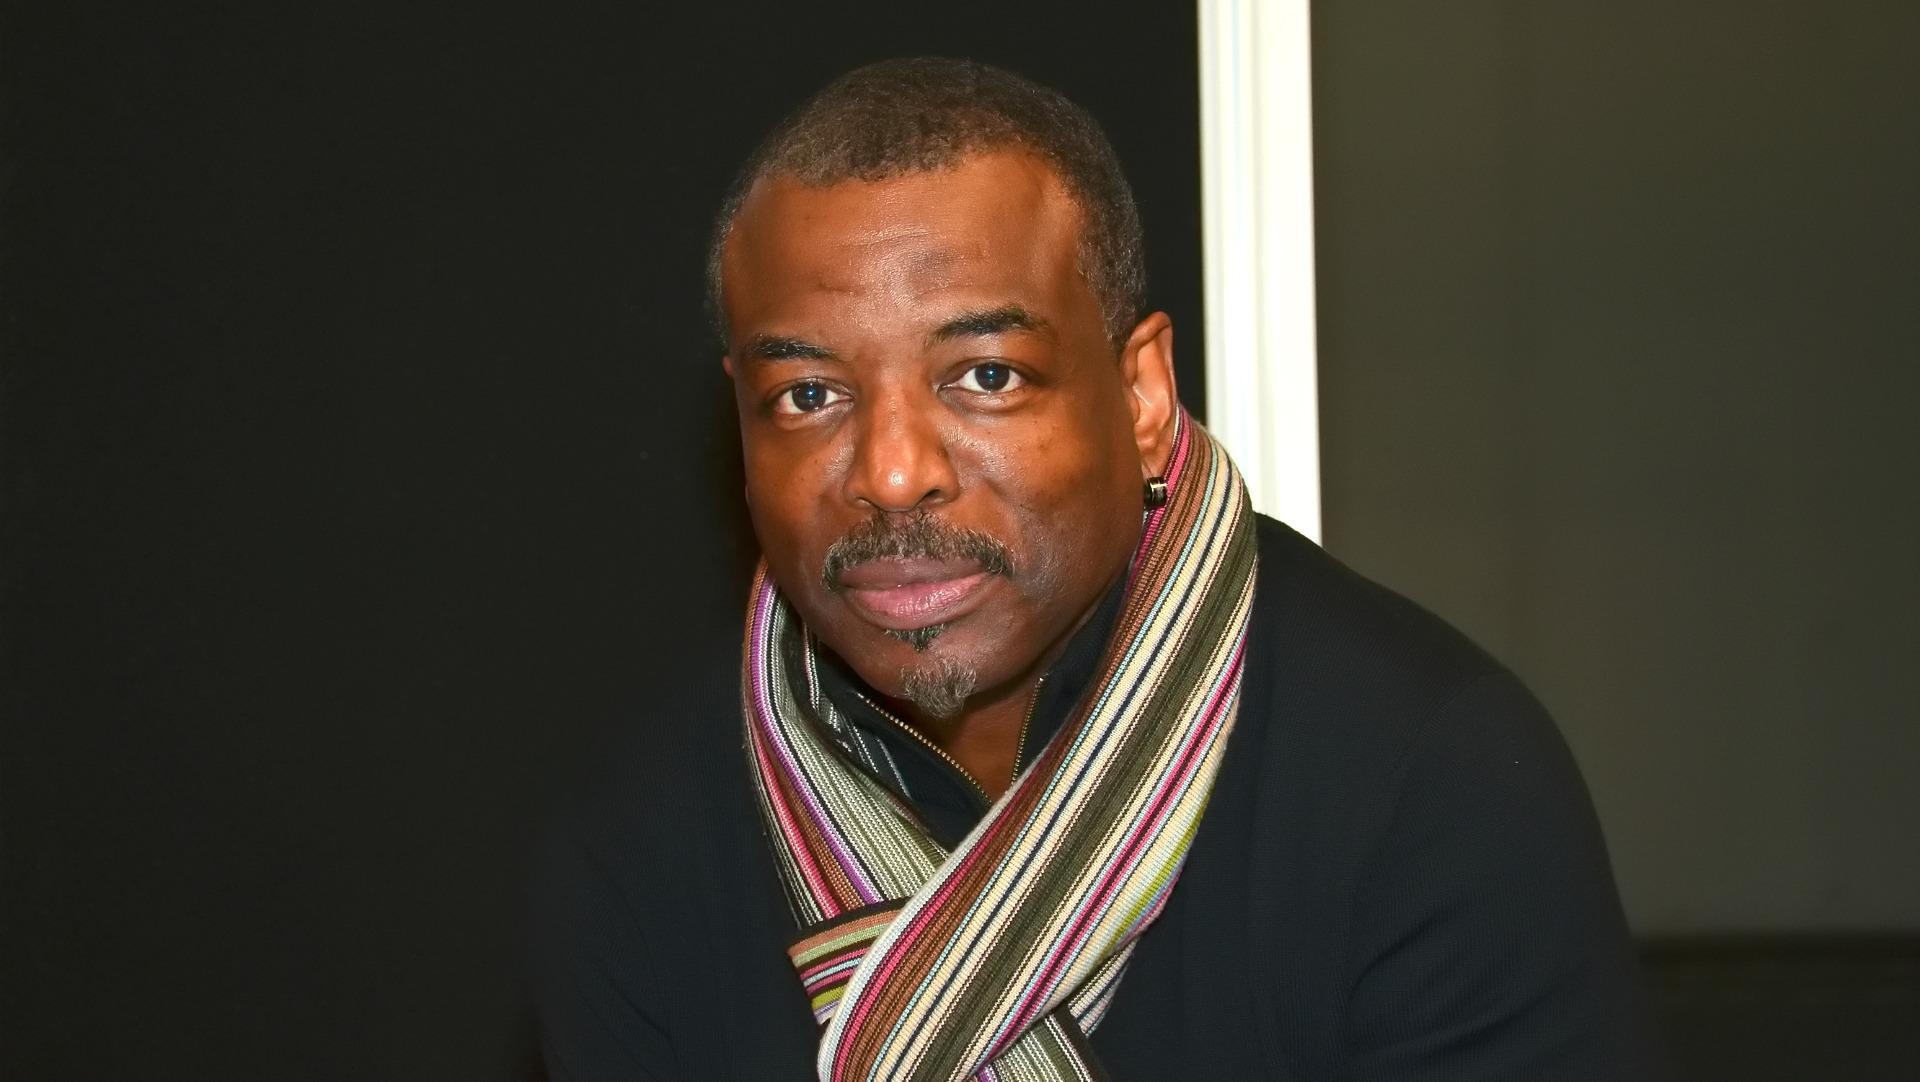 LeVar Burton Background